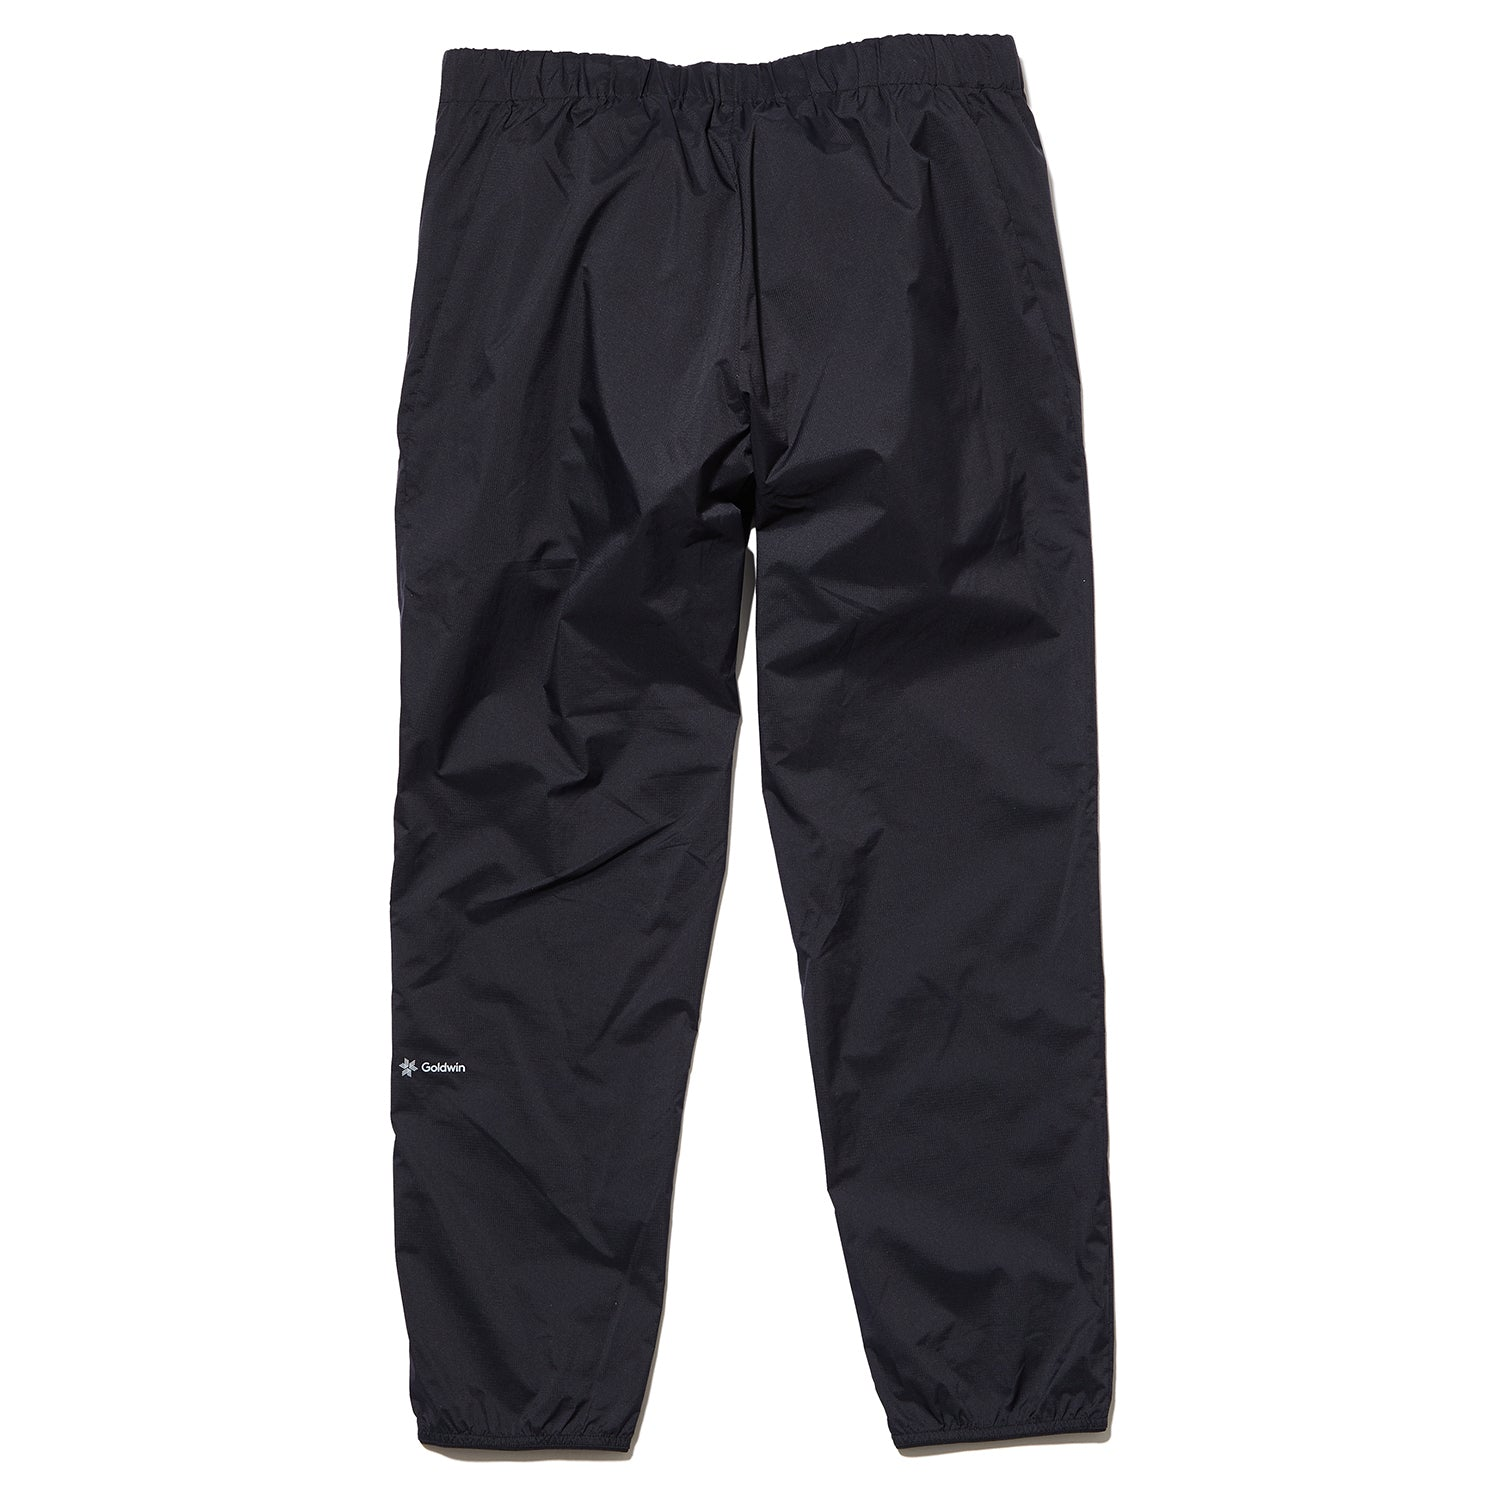 WOVEN STRETCH 9/10 PANTS MIRAGE GRAY